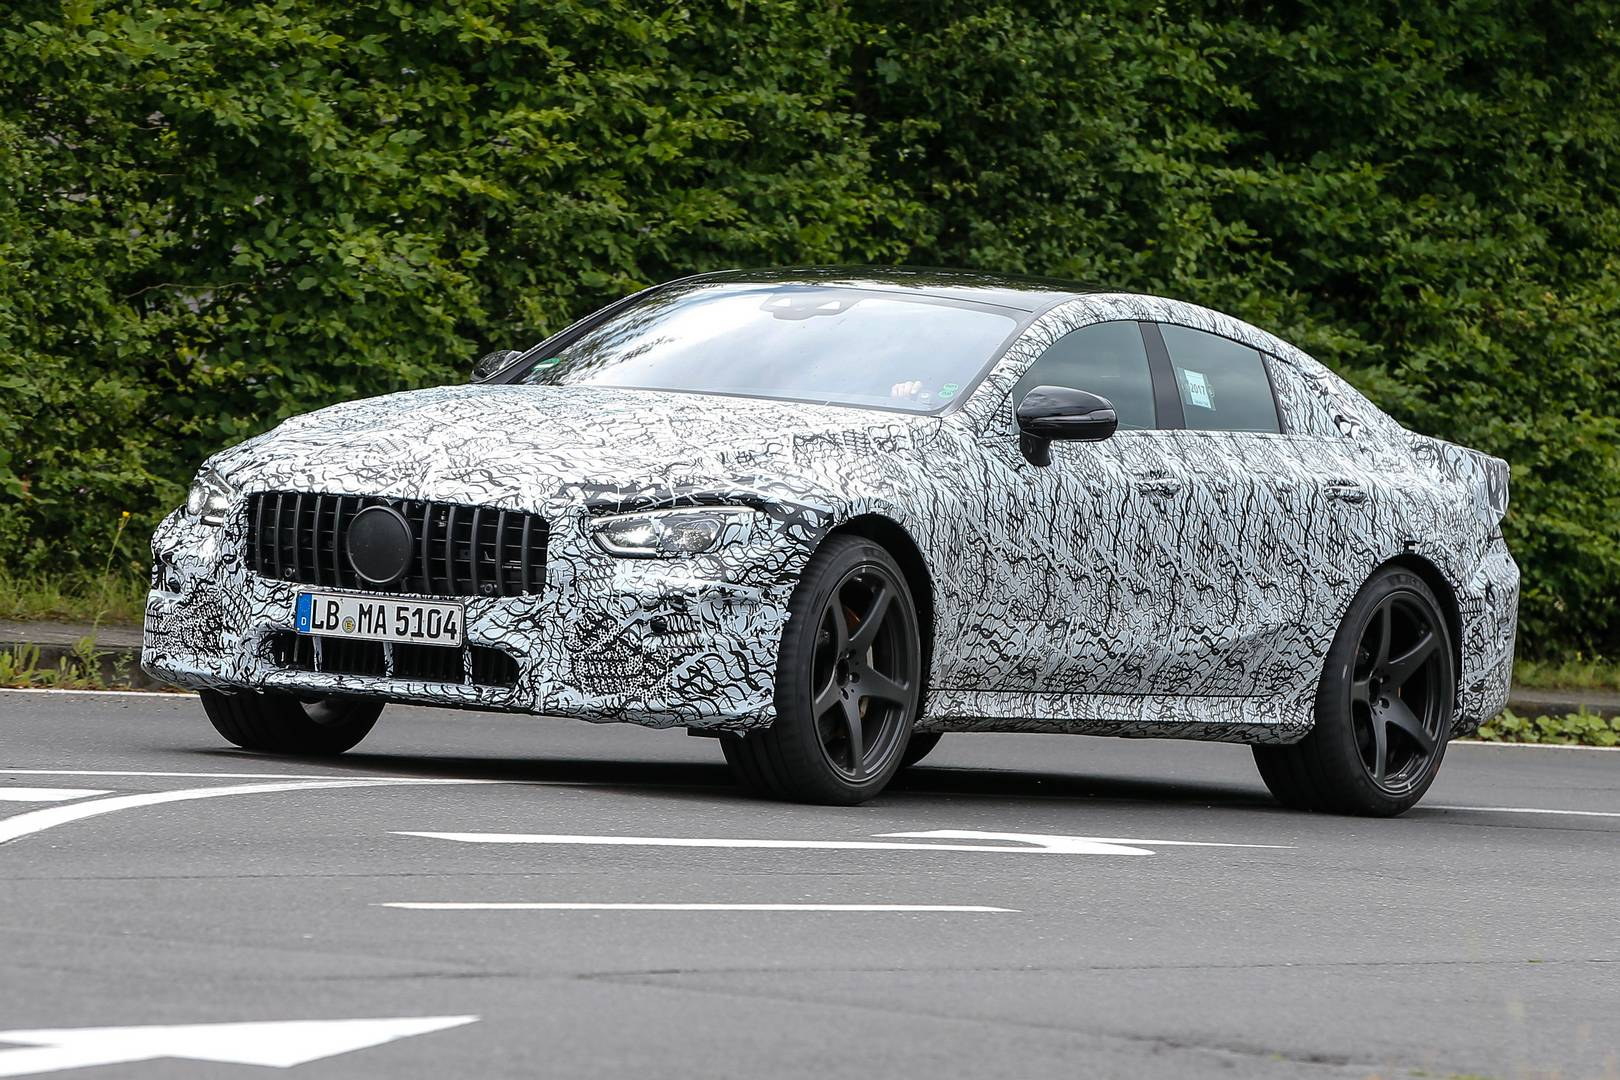 Le Meilleur Mercedes Amg Gt 4 Door Latest Spy Shots Gtspirit Ce Mois Ci